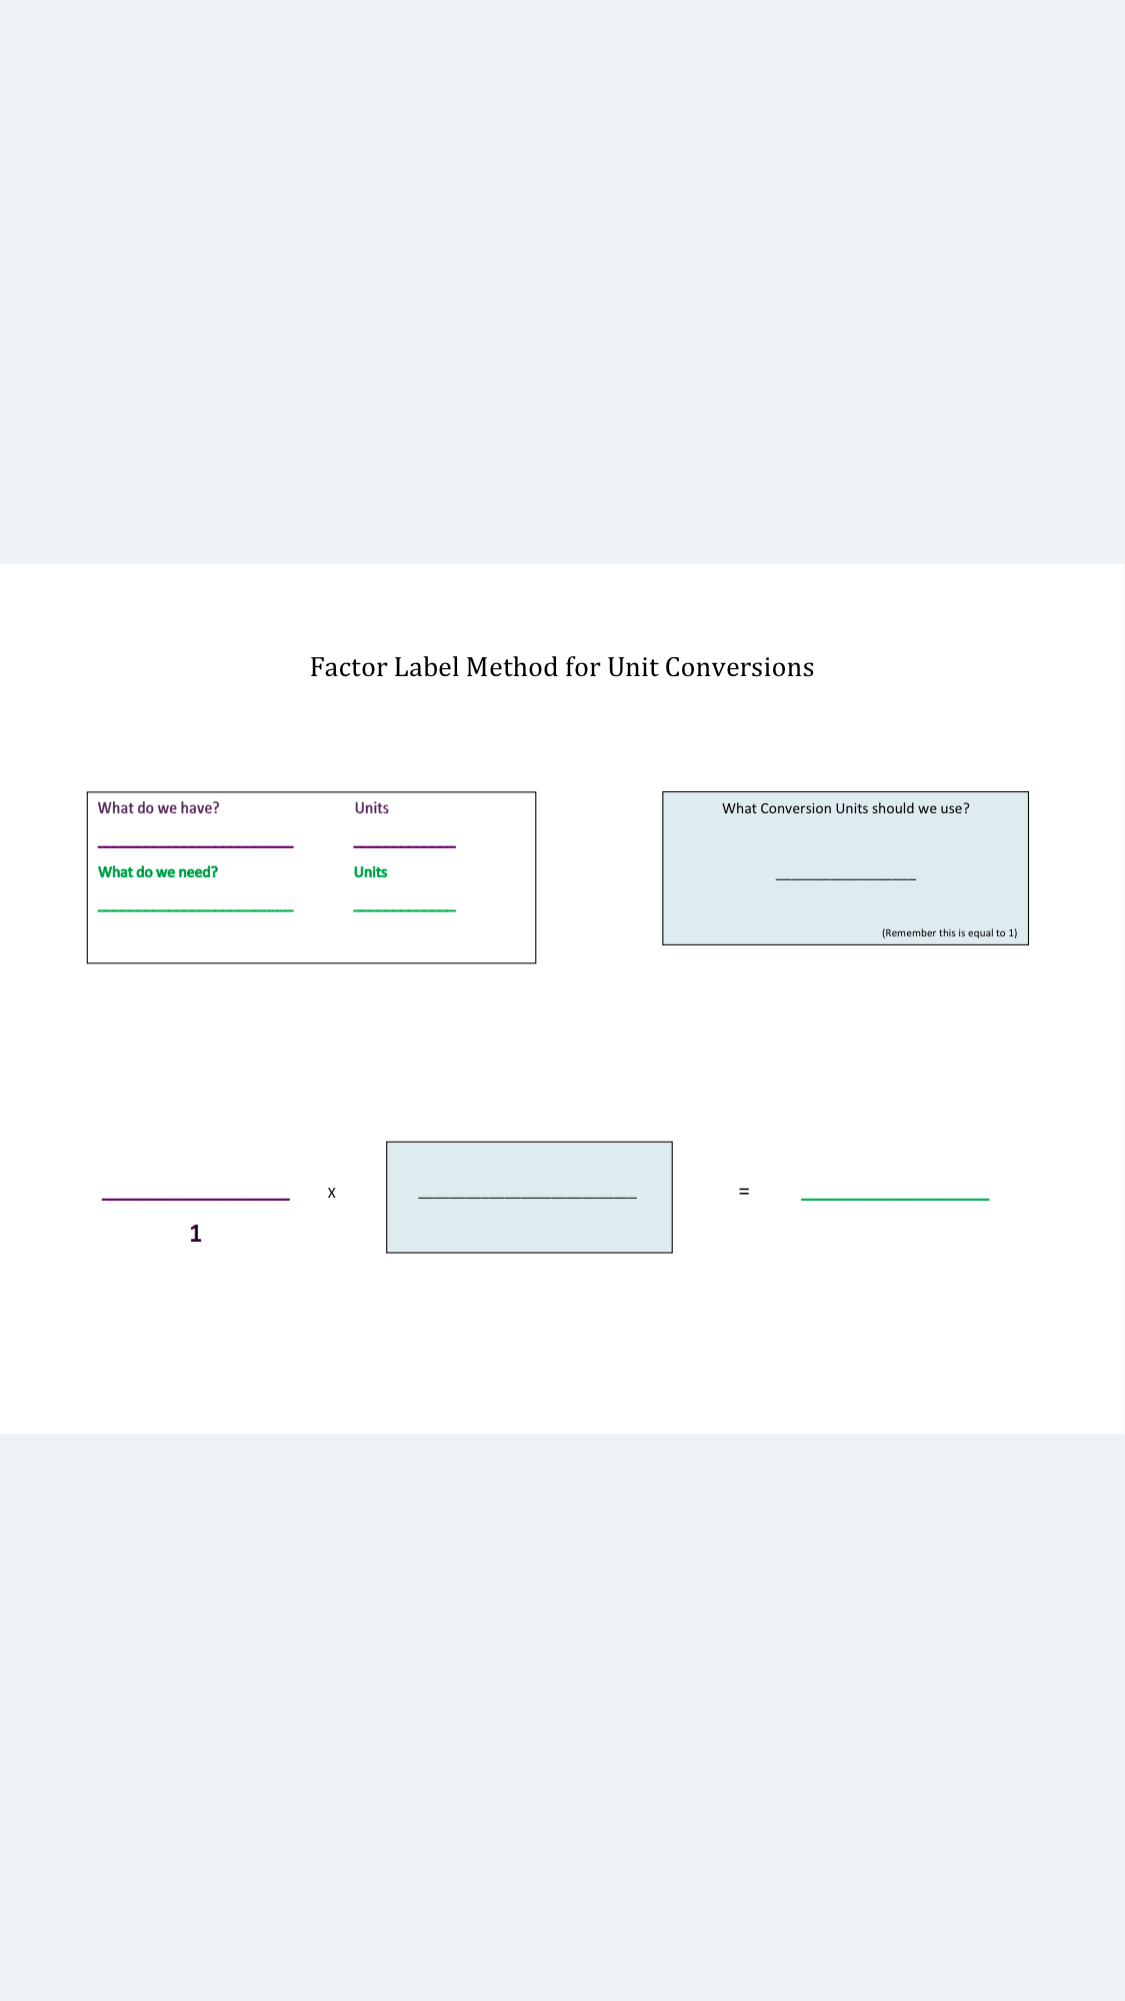 Factor Label Method For Unit Conversions